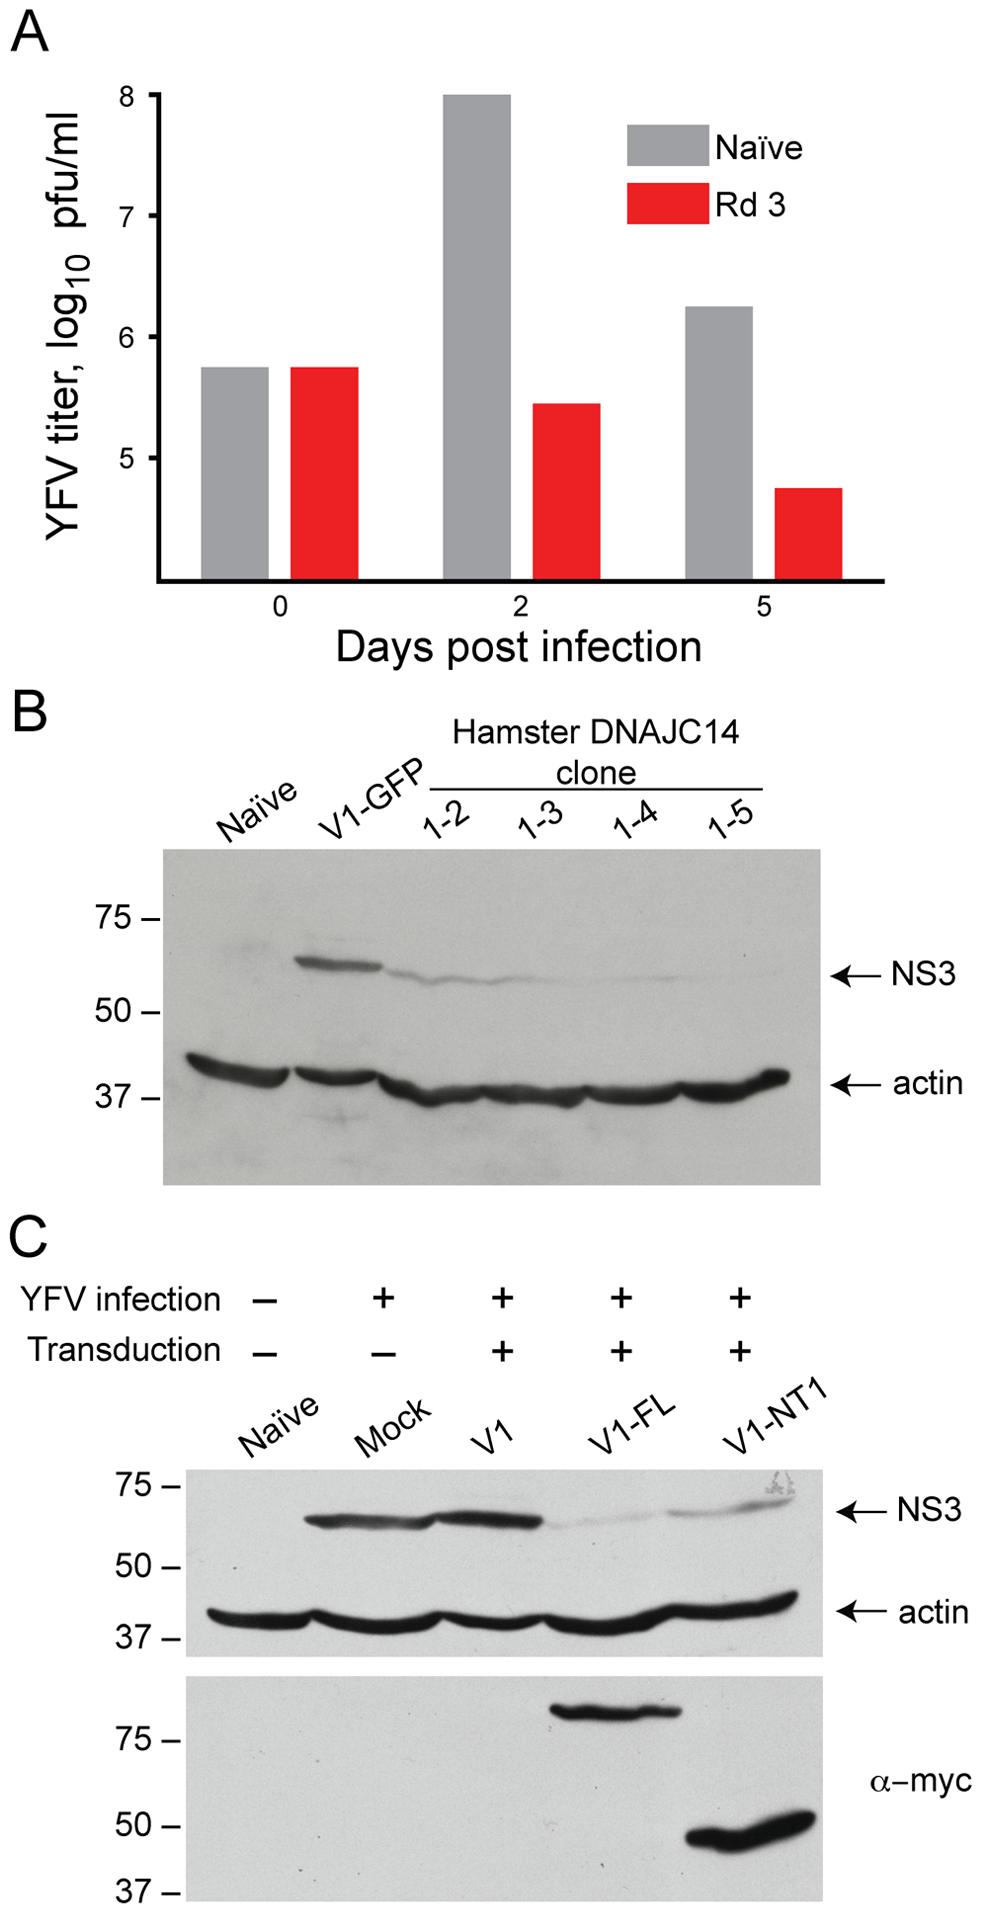 DNAJC14 inhibits YFV replication.